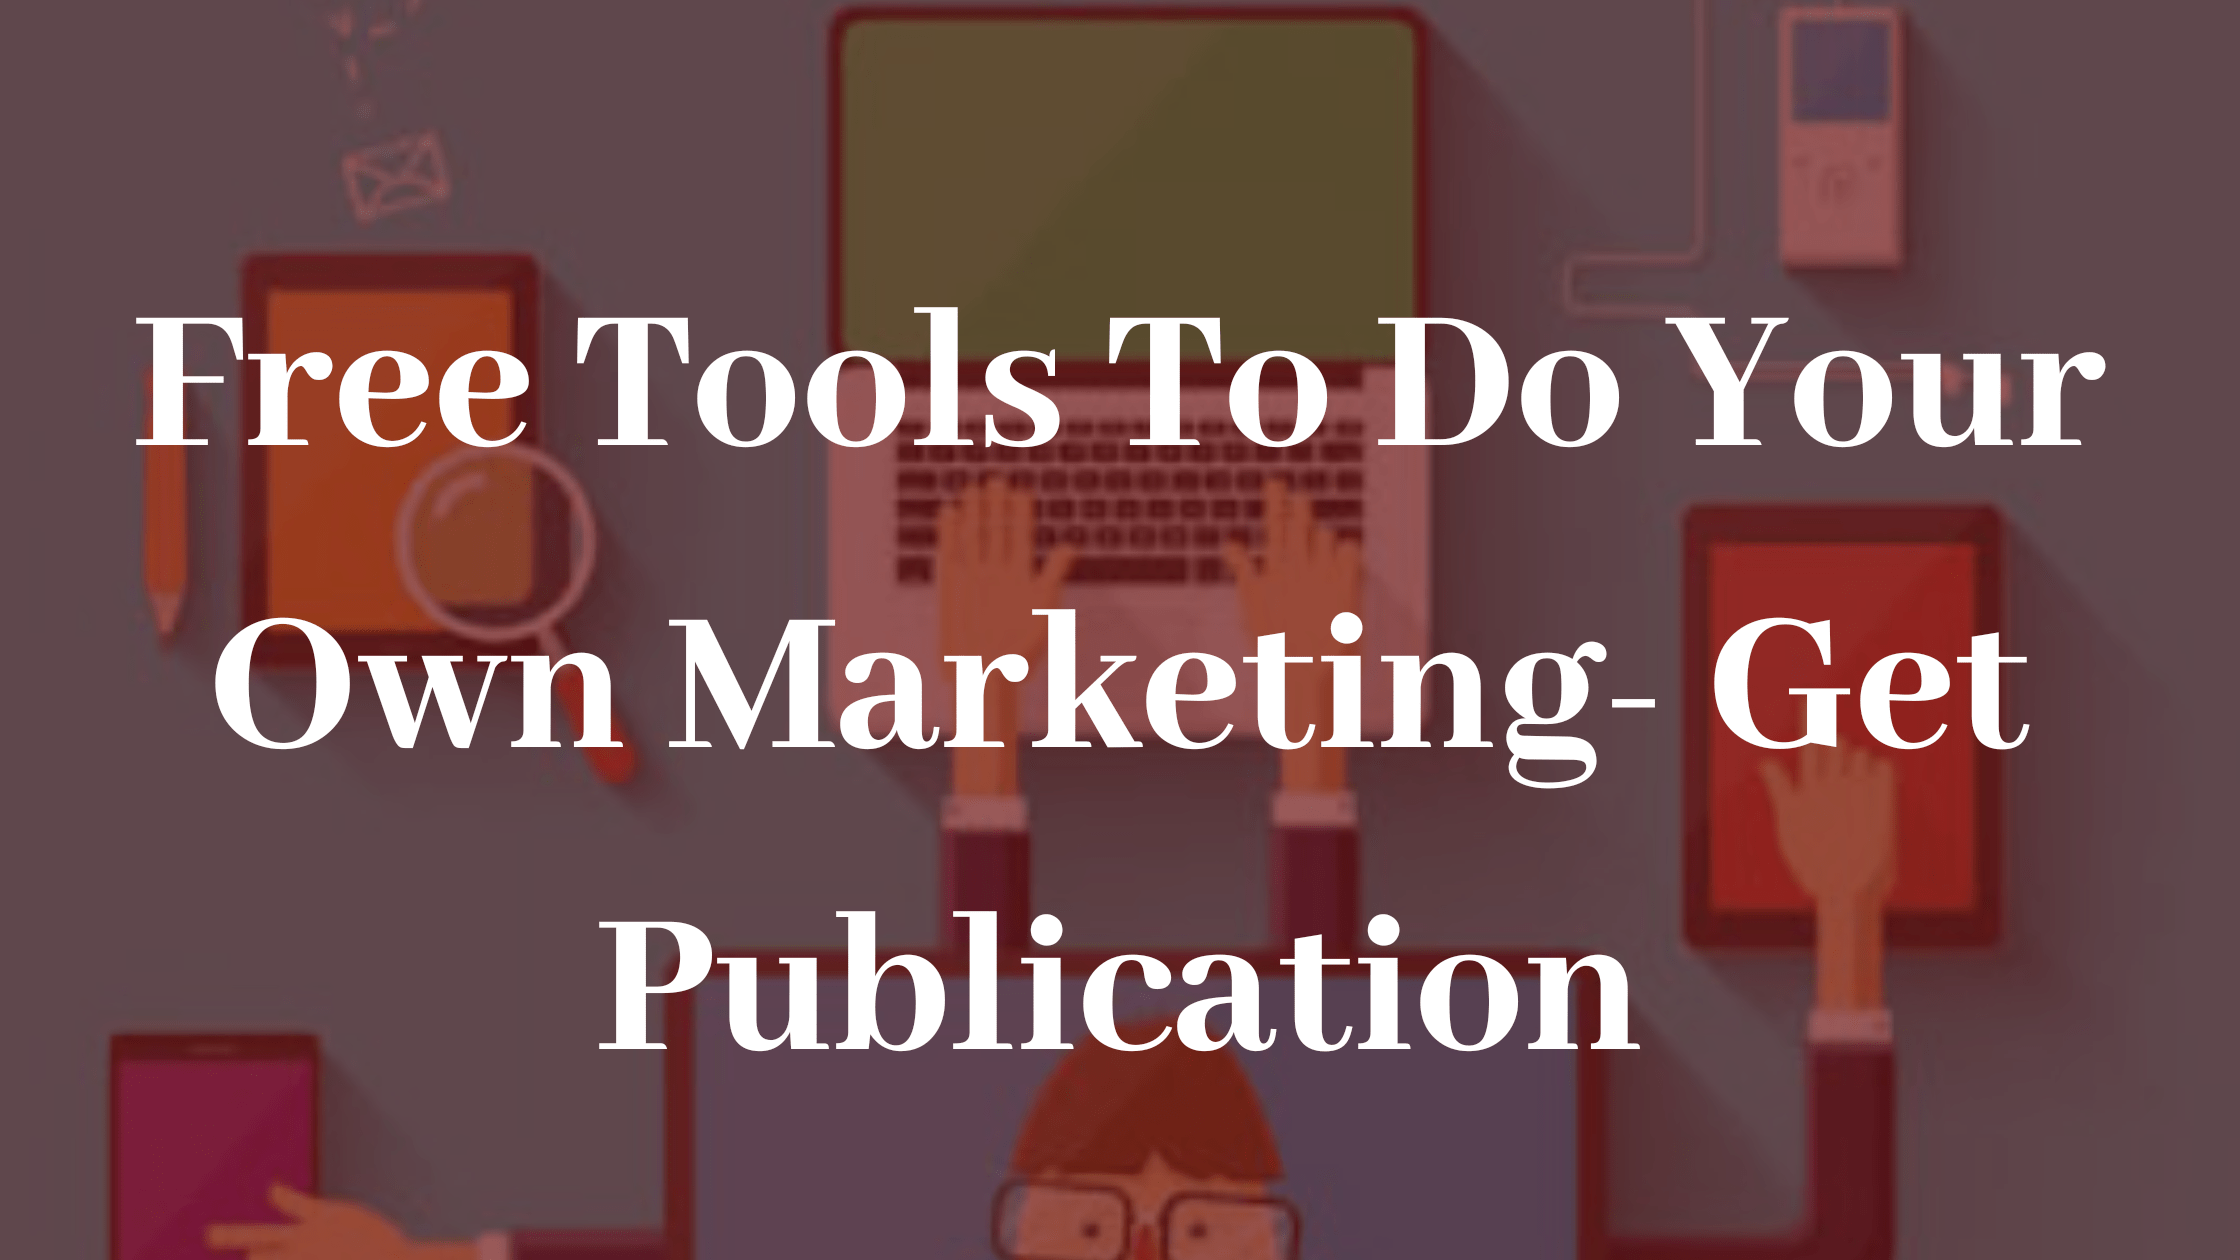 Free Tools To Do Your Own Marketing- Get Publication